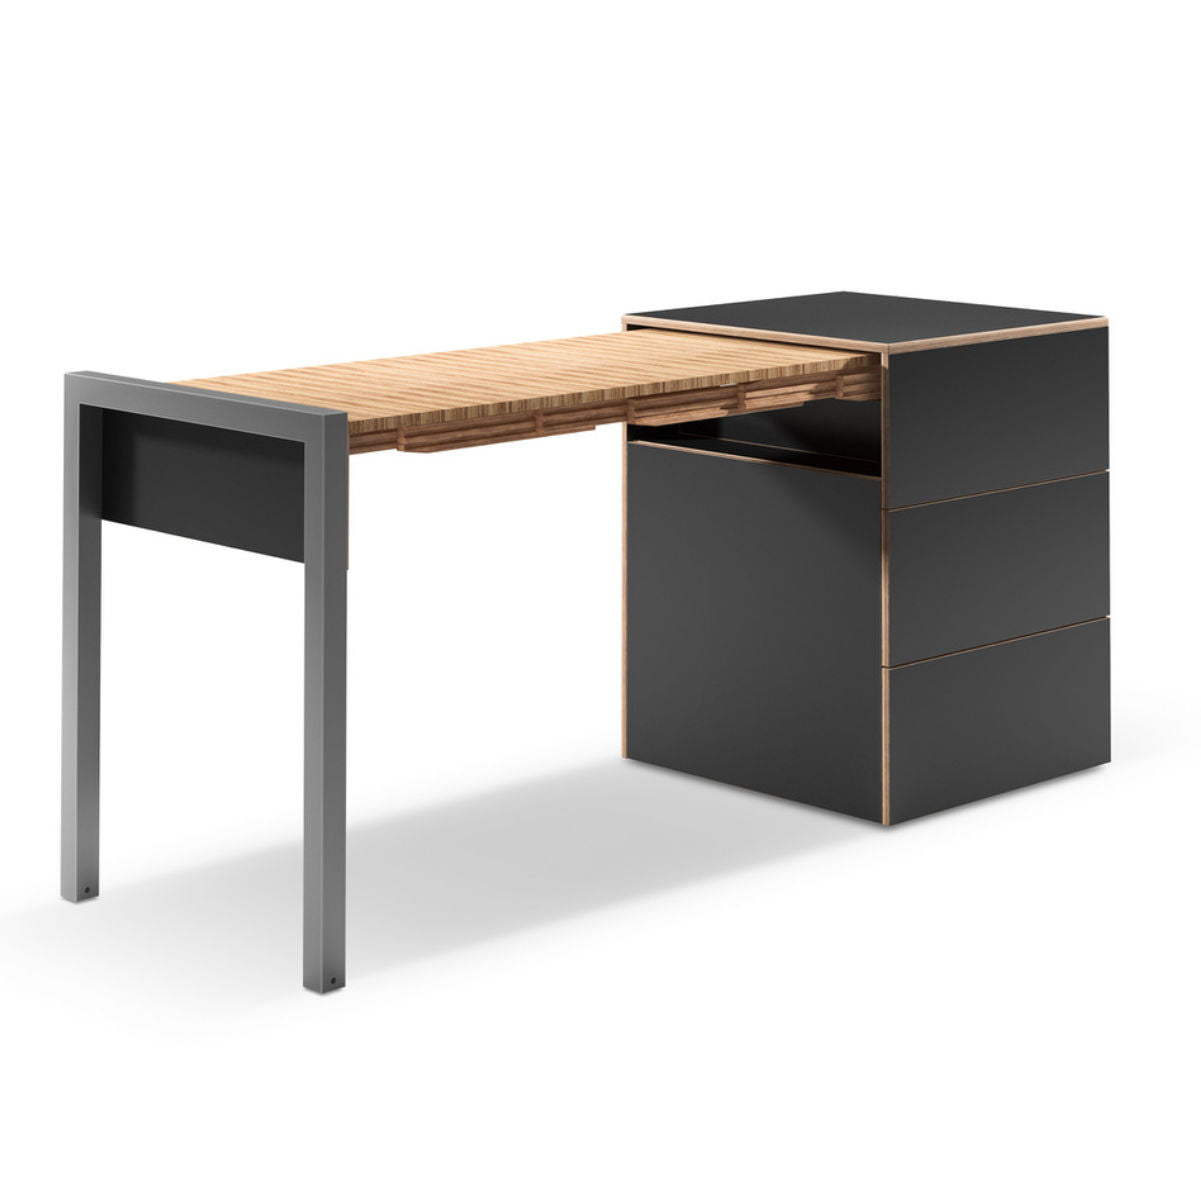 Country Living Alwin's Space Box, extendable table, black, beech veneer